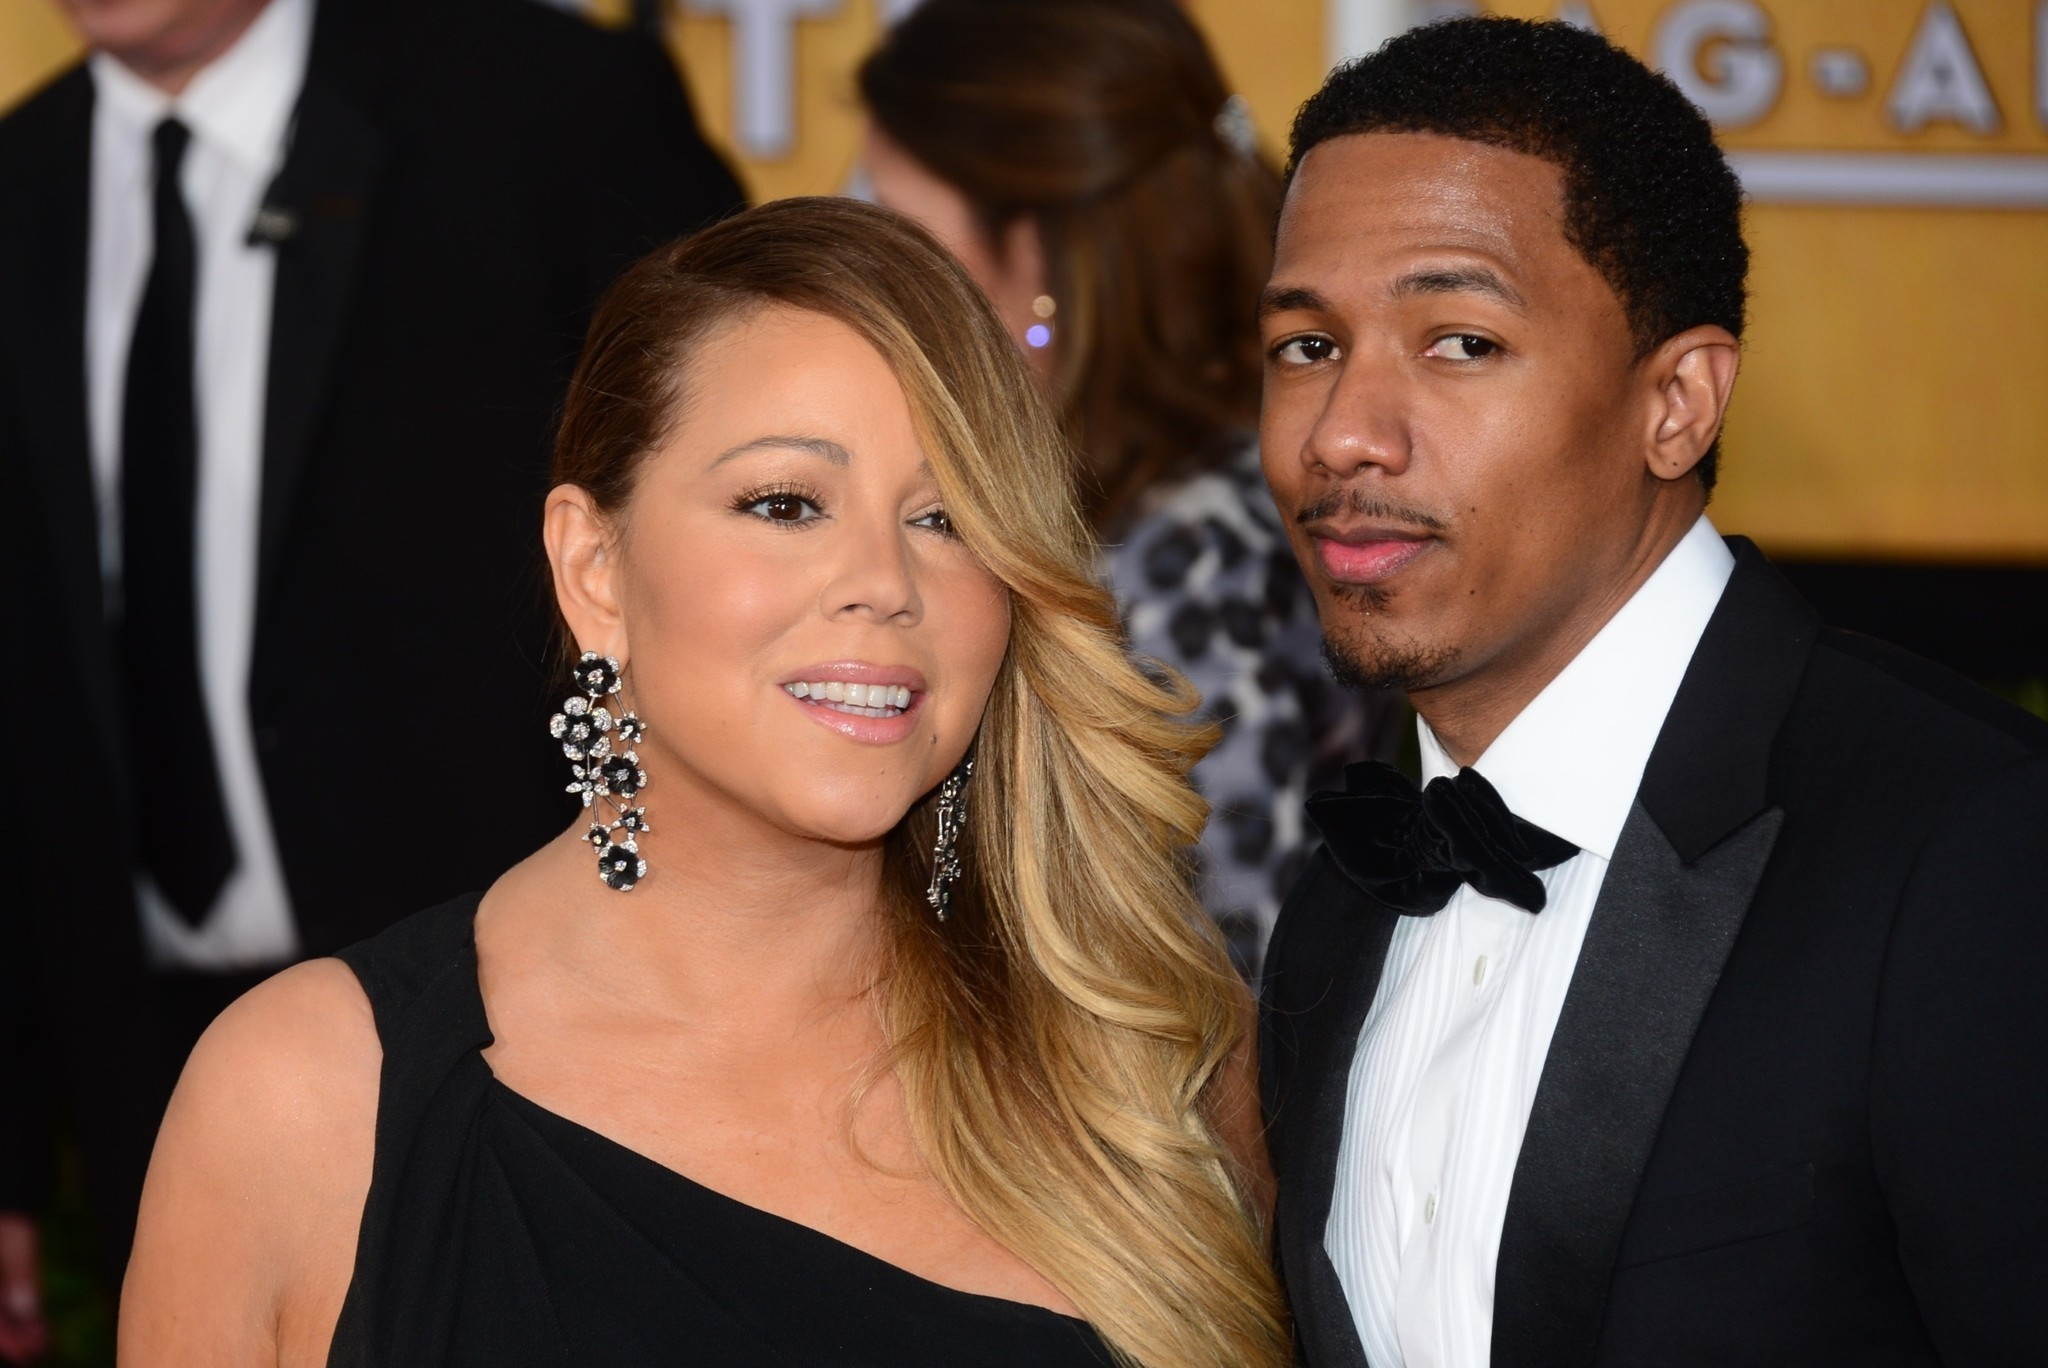 cannon divorced singles Nick cannon is wild 'n out on a  nick cannon addresses mariah carey divorce in awful  we single now but we really need to think about is how.